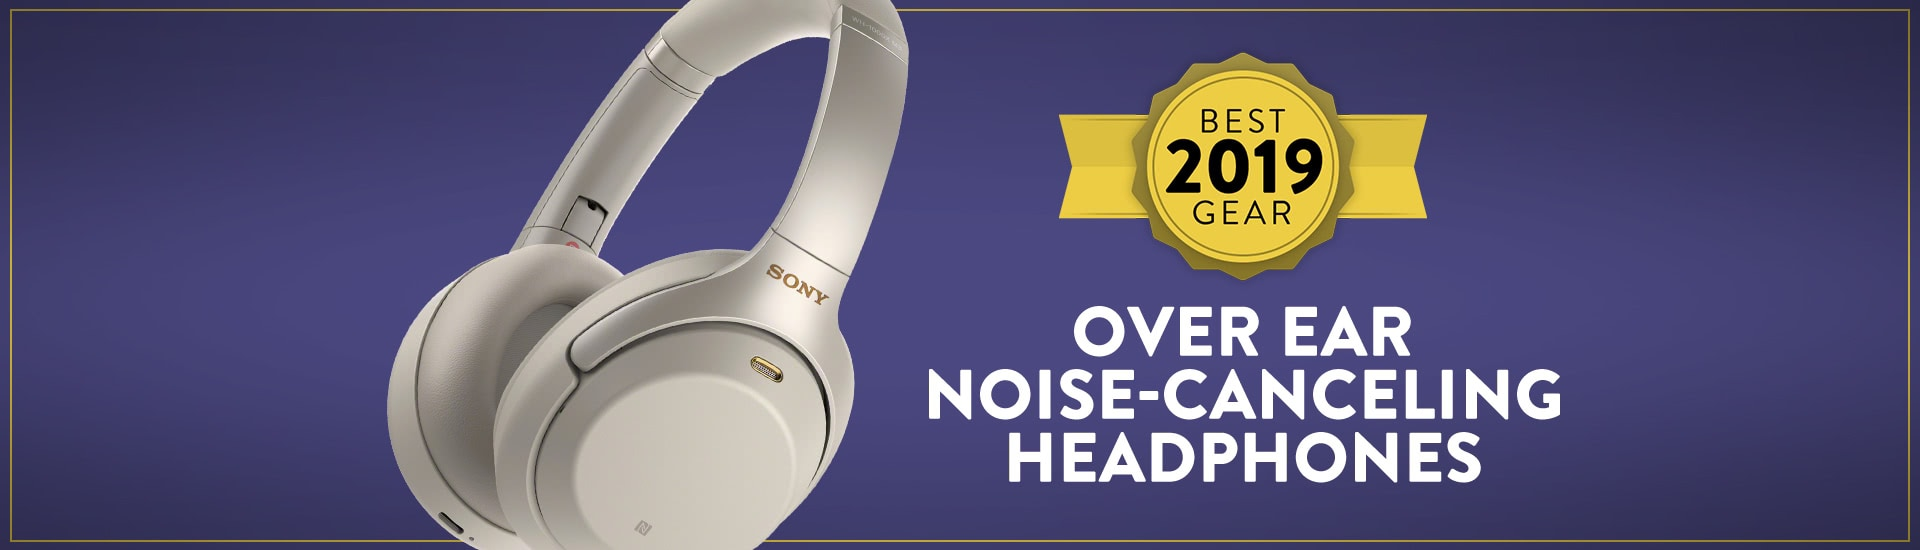 20190717 2019 best over ear noise canceling headphones blog header